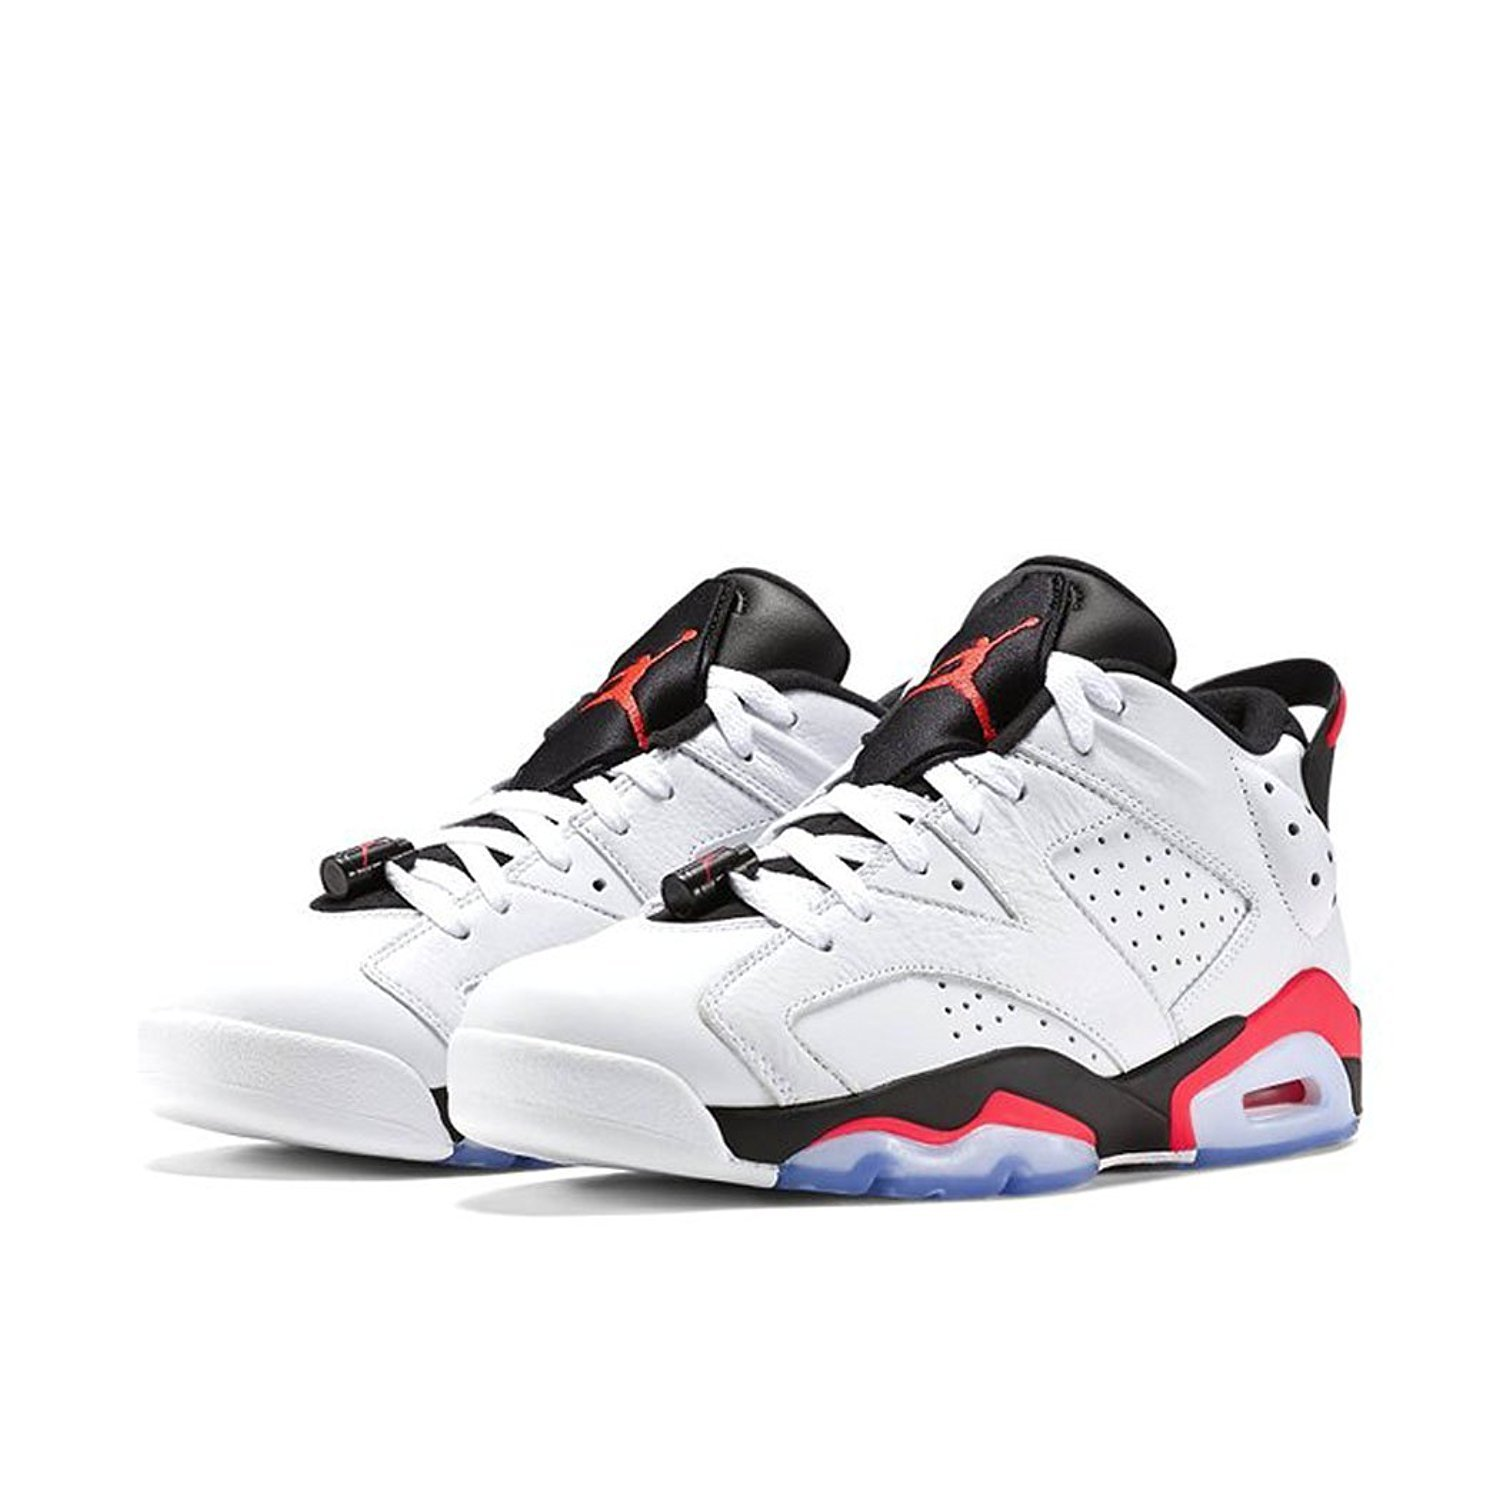 check out a3cf7 7727b Get Quotations · Jordan Nike Men s Air 6 Retro Low White Infrared 23-Black  Basketball Shoe 12